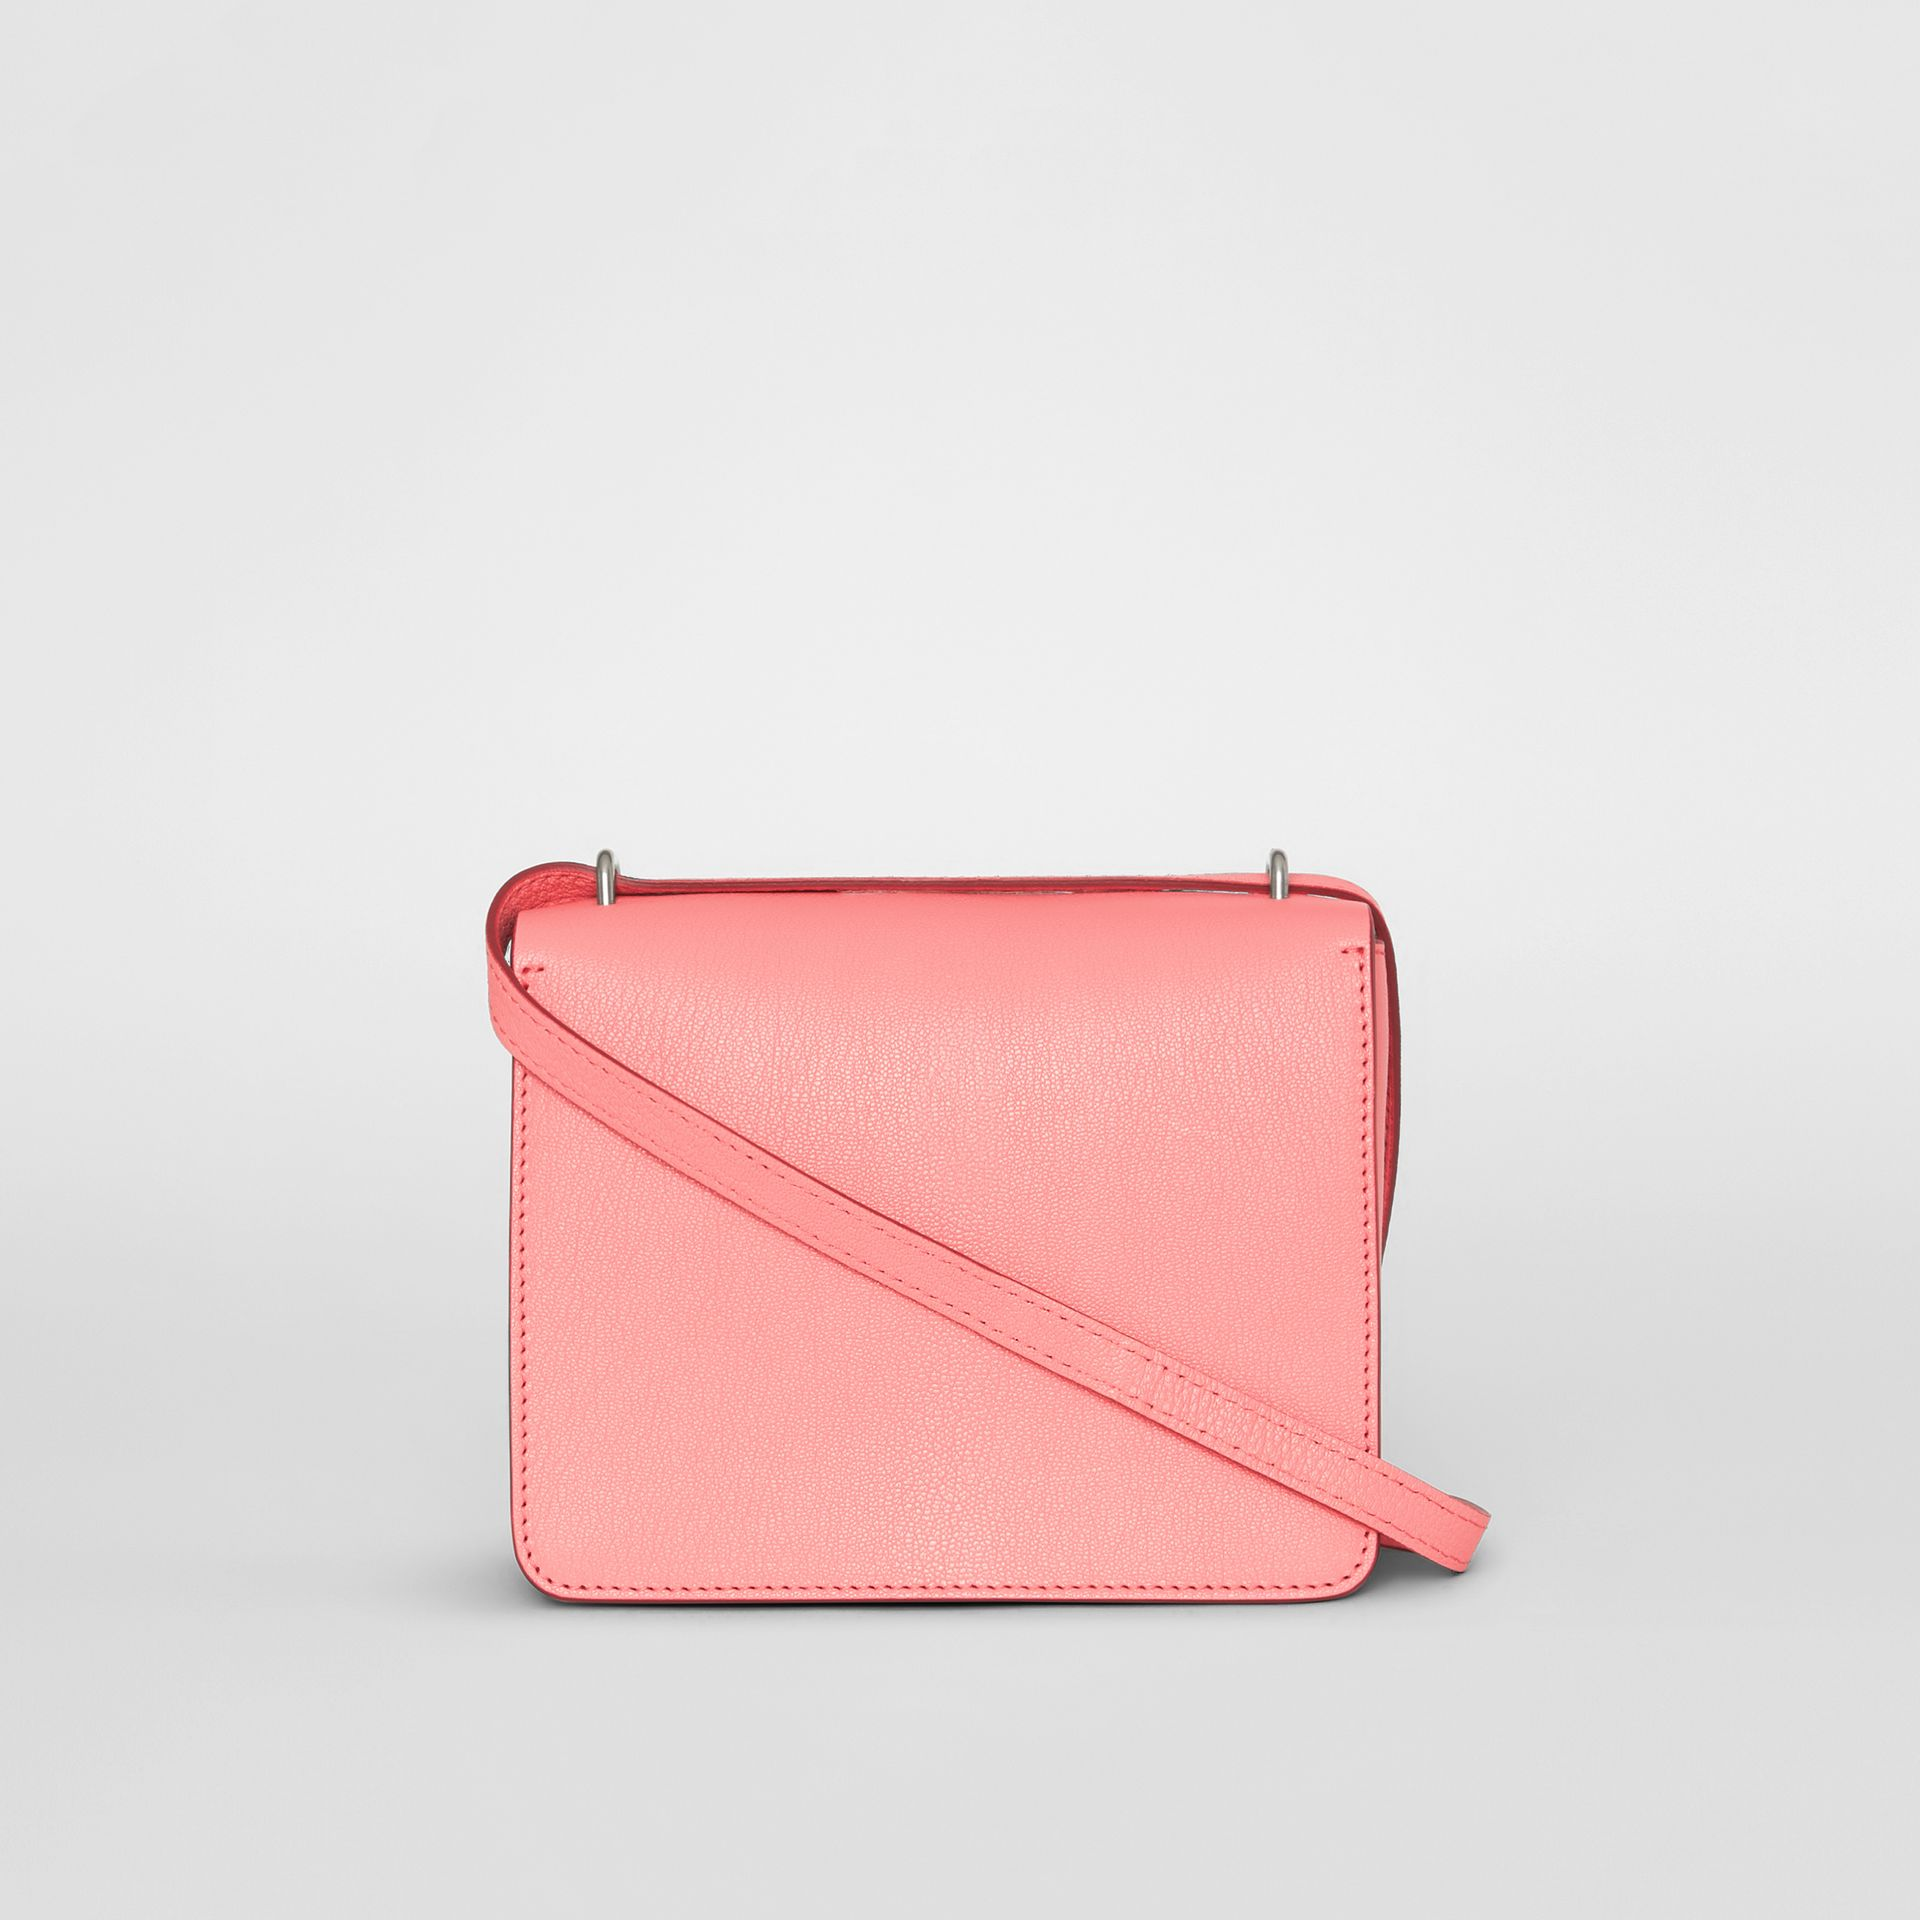 The Small Leather D-ring Bag in Bright Coral Pink - Women | Burberry - gallery image 7